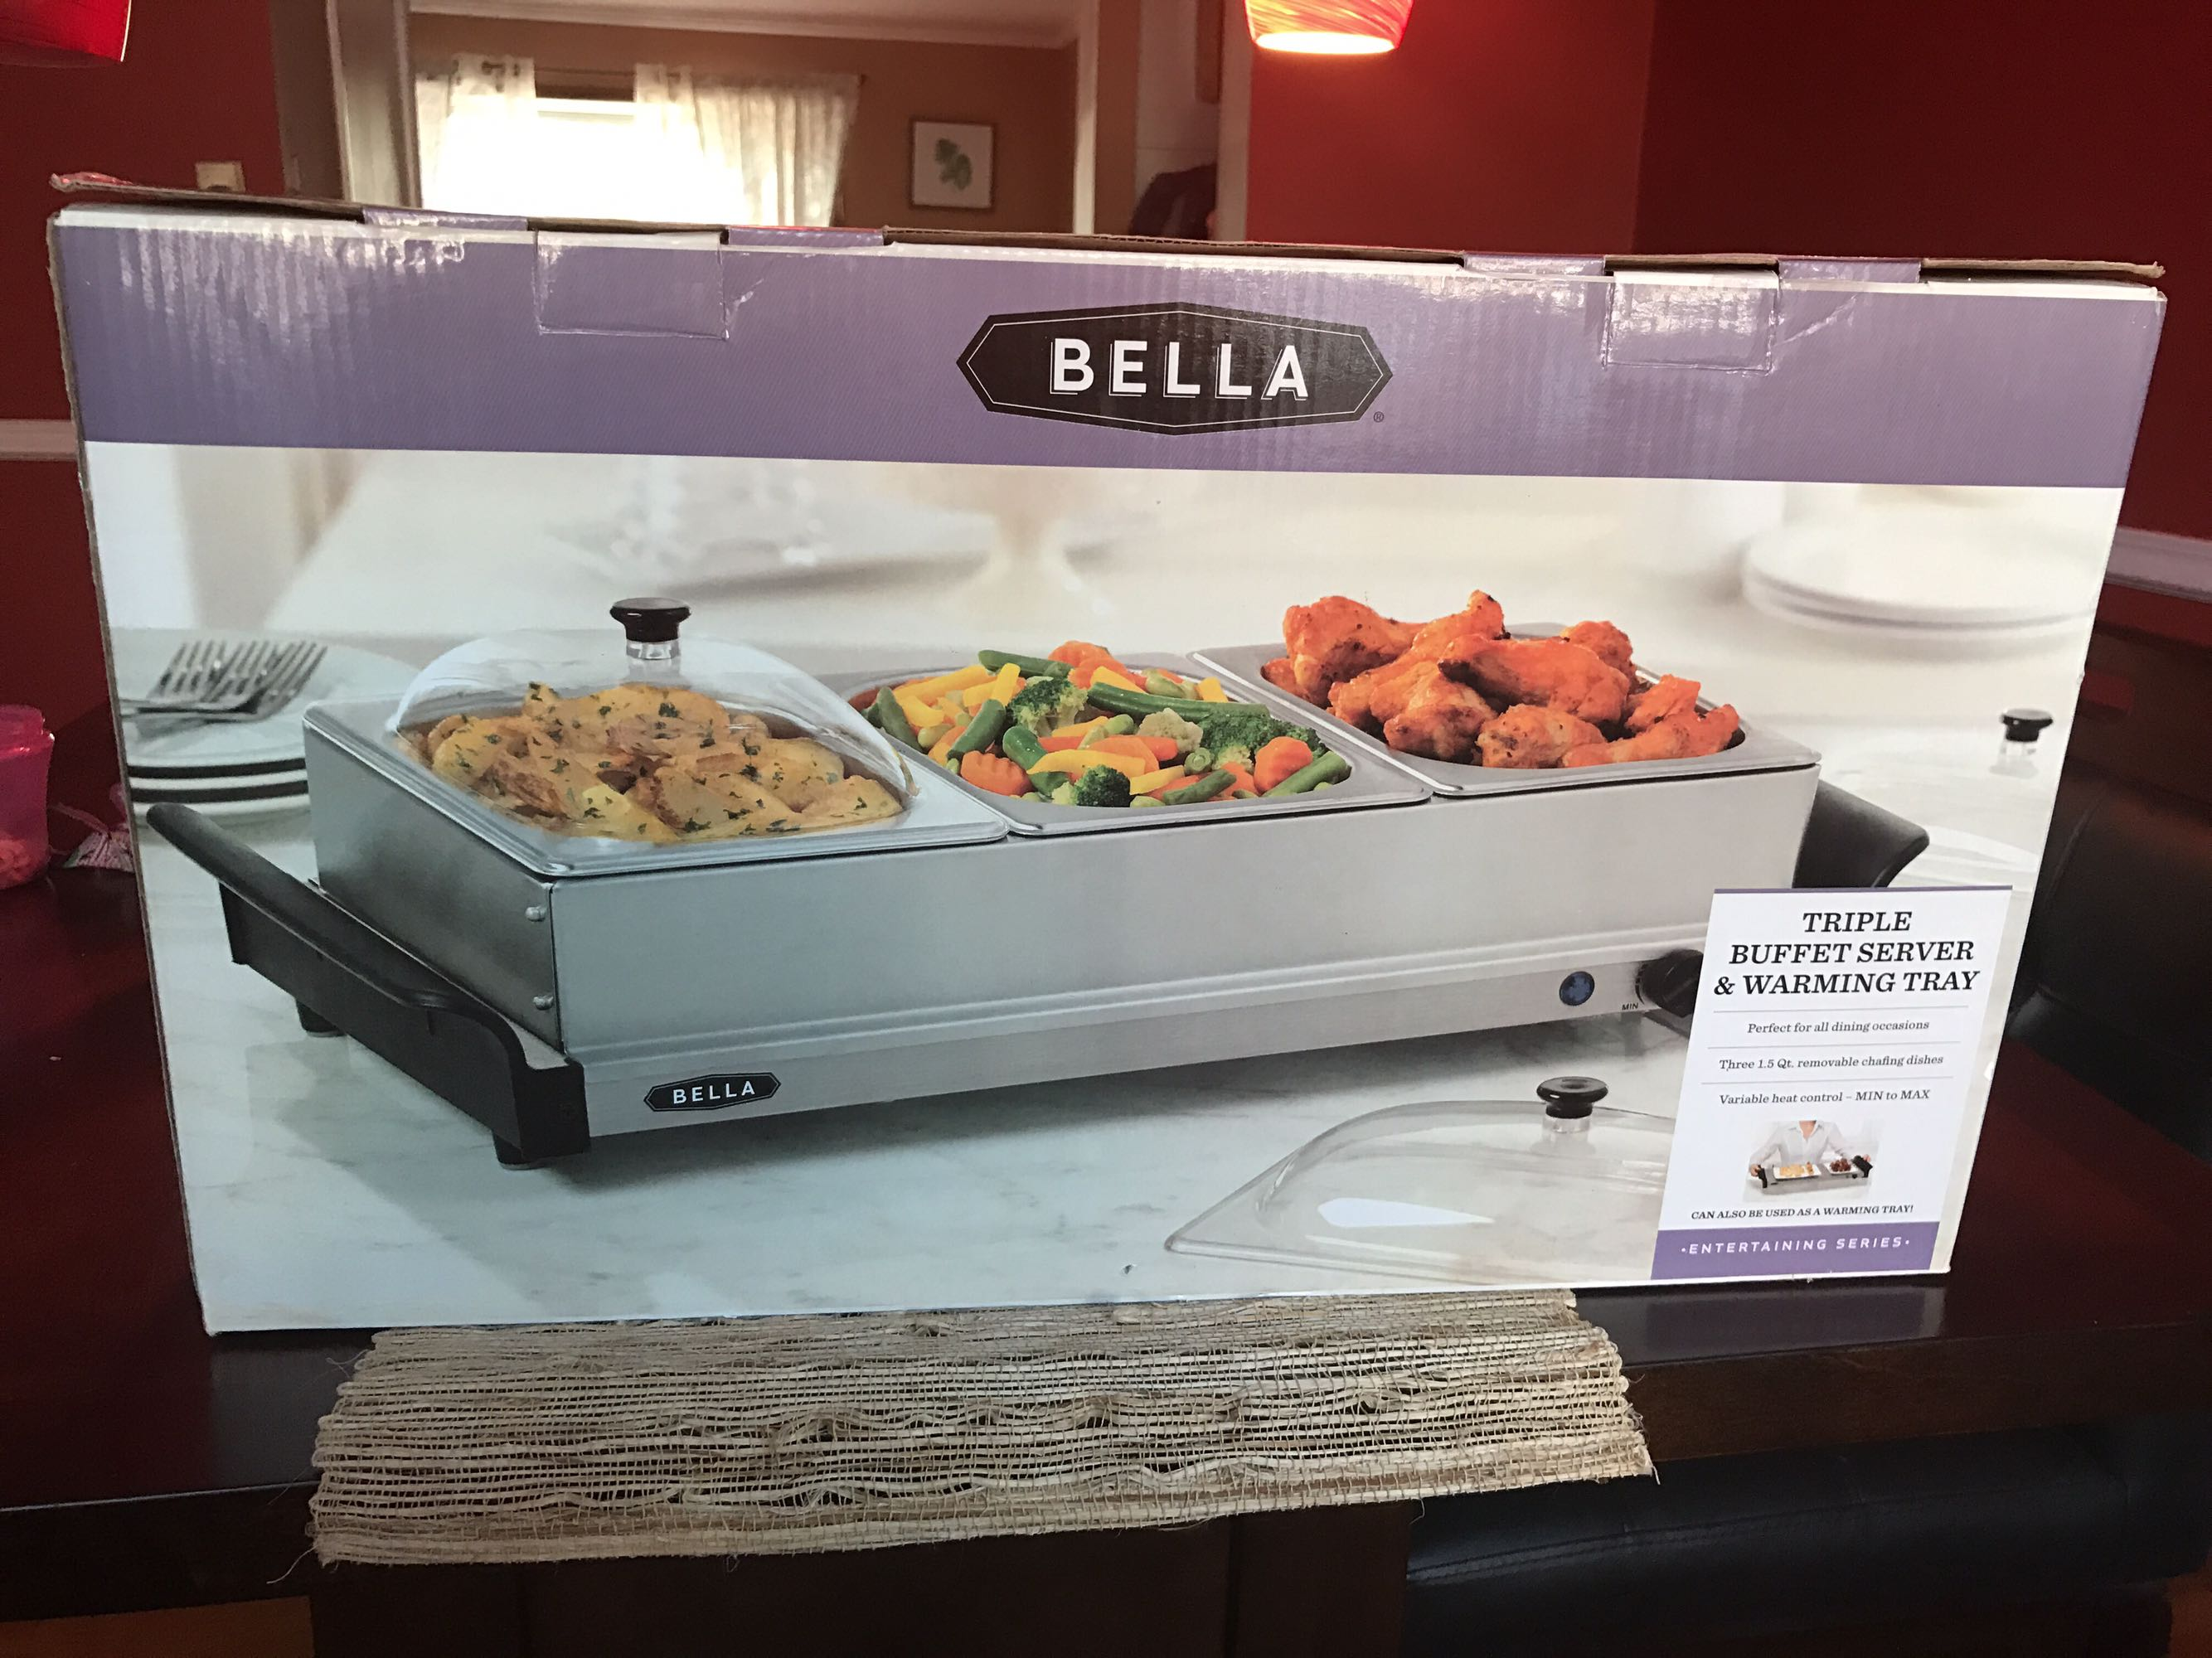 Bella food server and warmer (still in box)